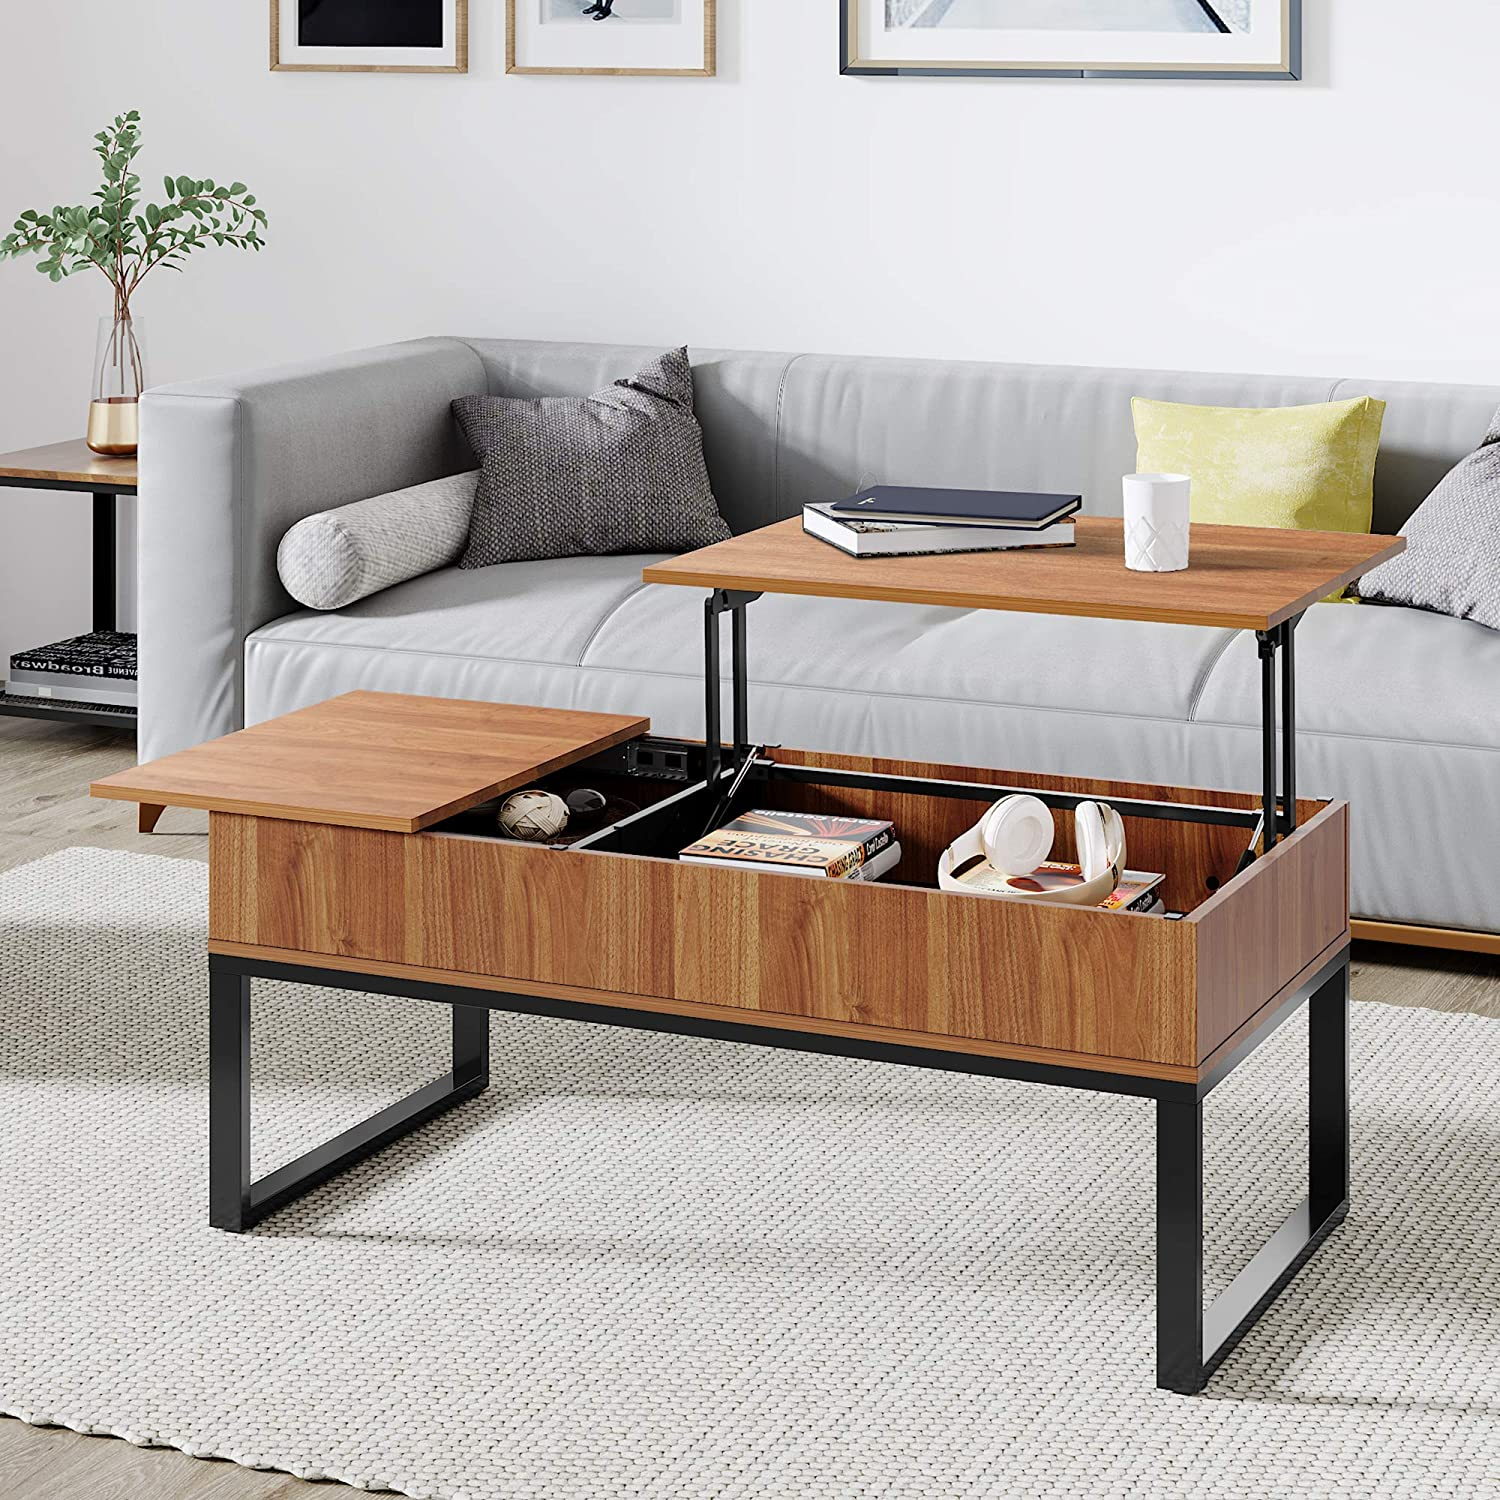 Amazon Com Wlive Wood Lift Top Coffee Table With Hidden Storage Compartment Side Drawer And Metal Frame Lift Tabletop Dining Table For Home Living Room Office Kitchen Dining